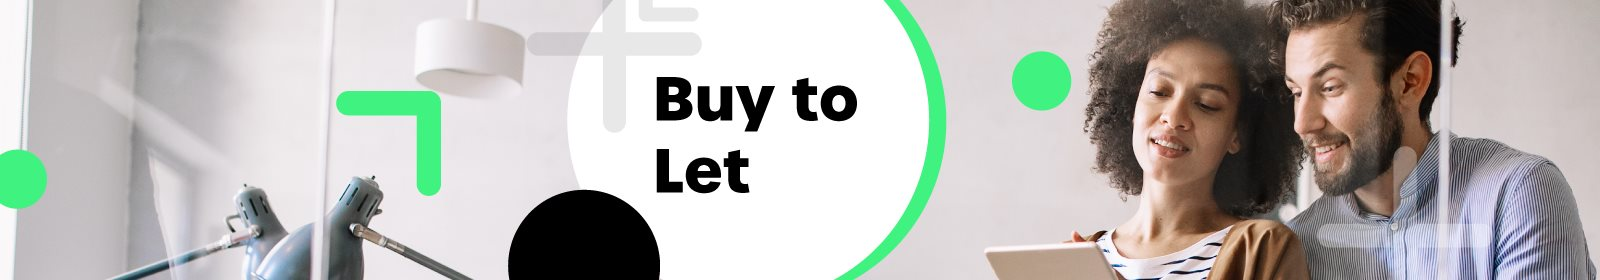 Buy-to-let guide: Investing in buy-to-let property